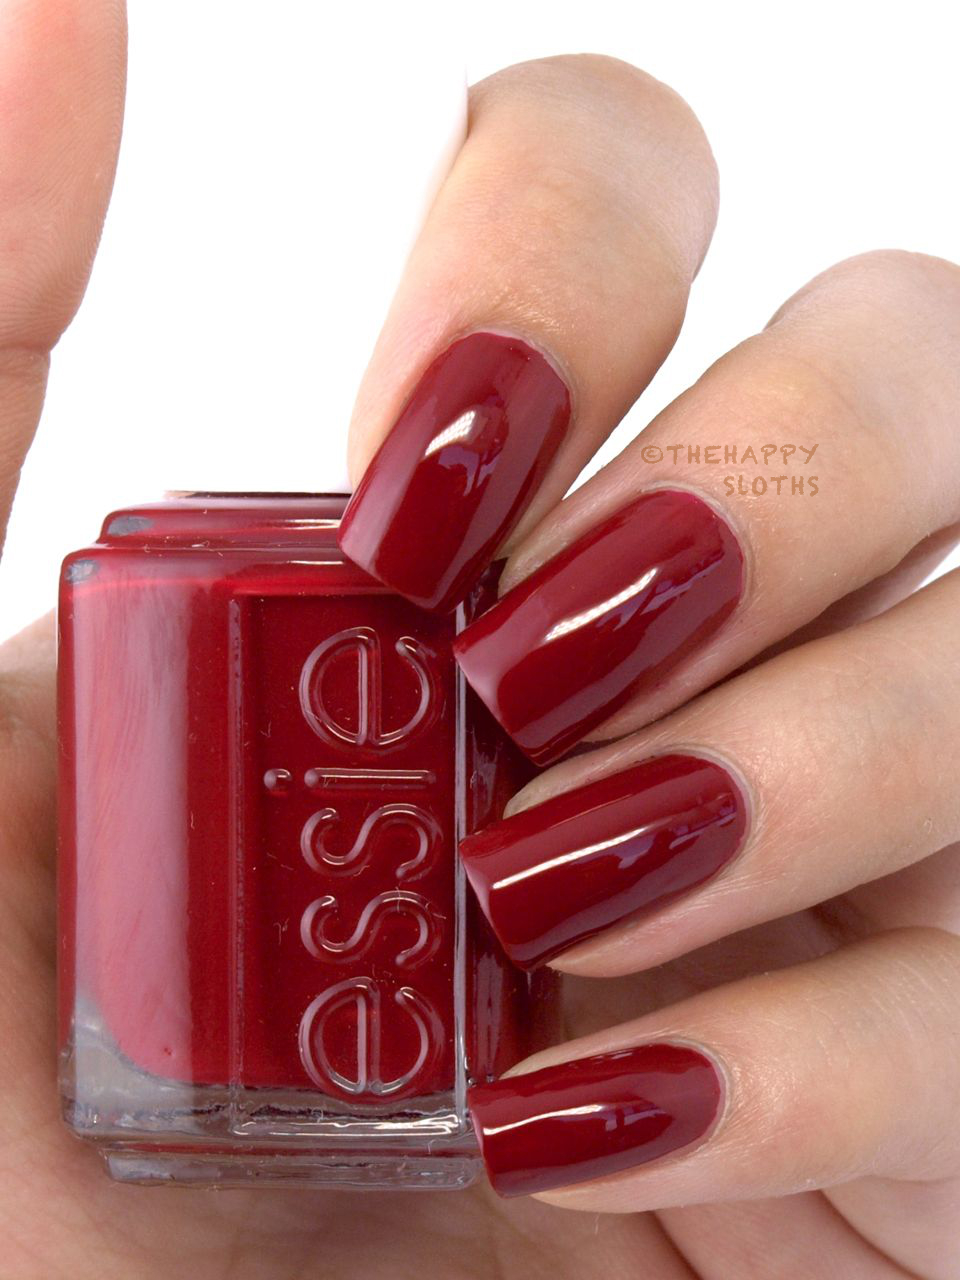 Essie Fall 2014 Dress To Kilt Collection: Review and